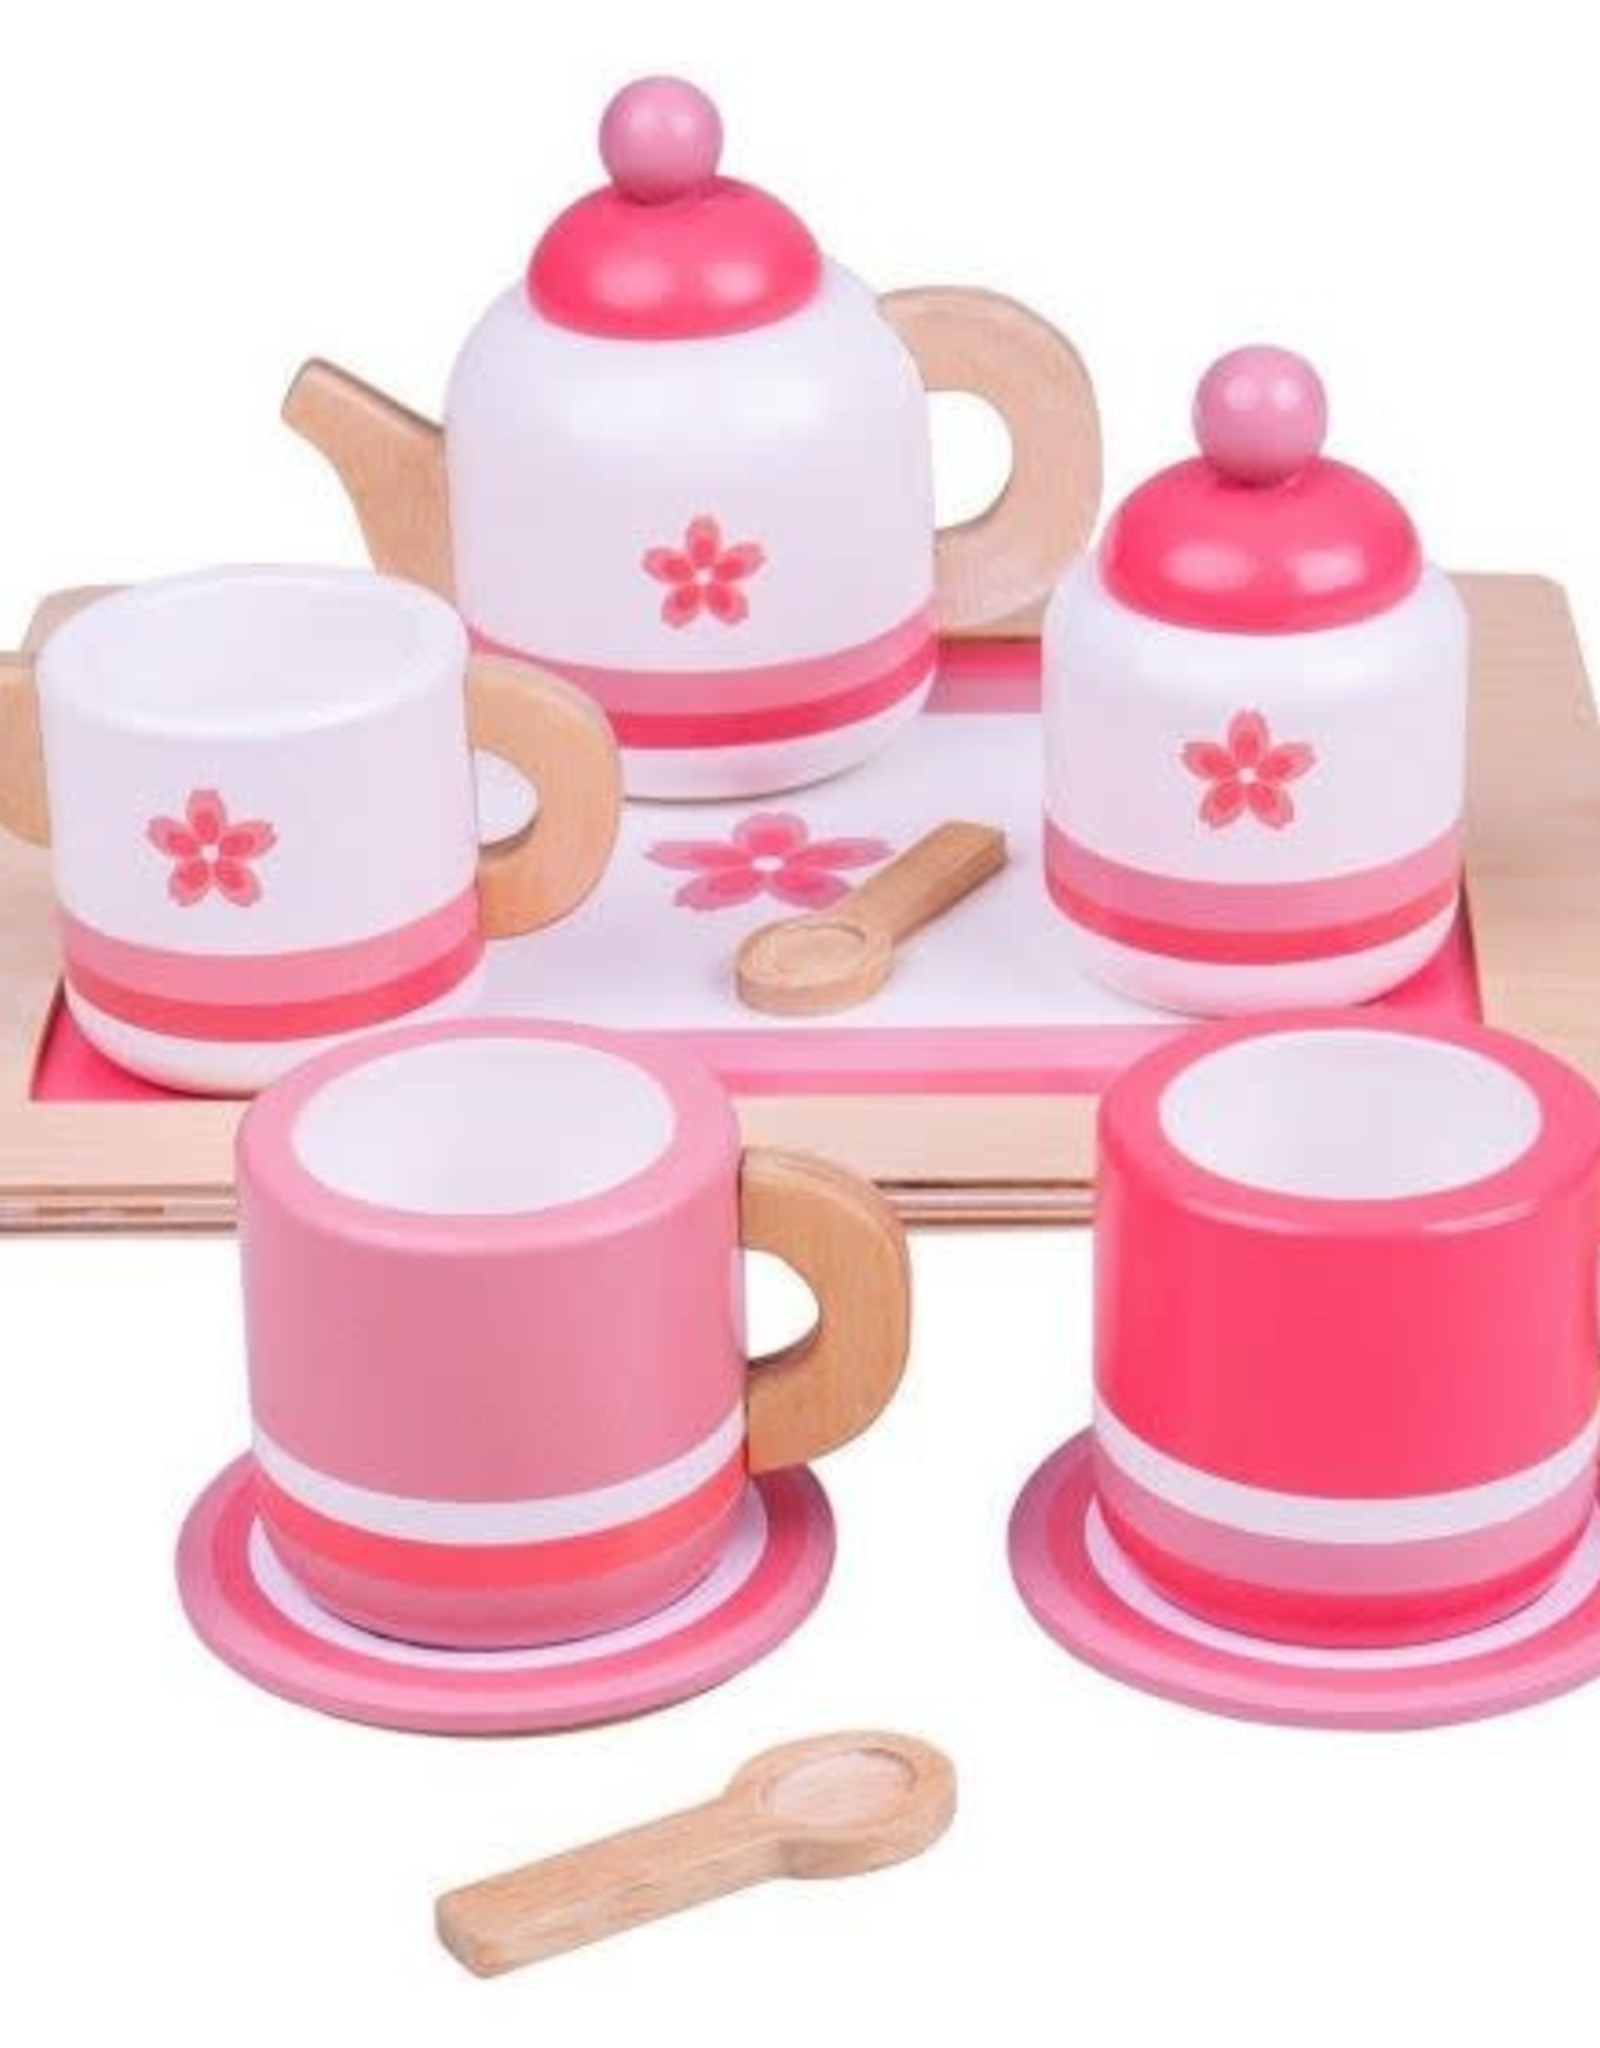 Bigjigs Toys Tea Tray Wooden Pink